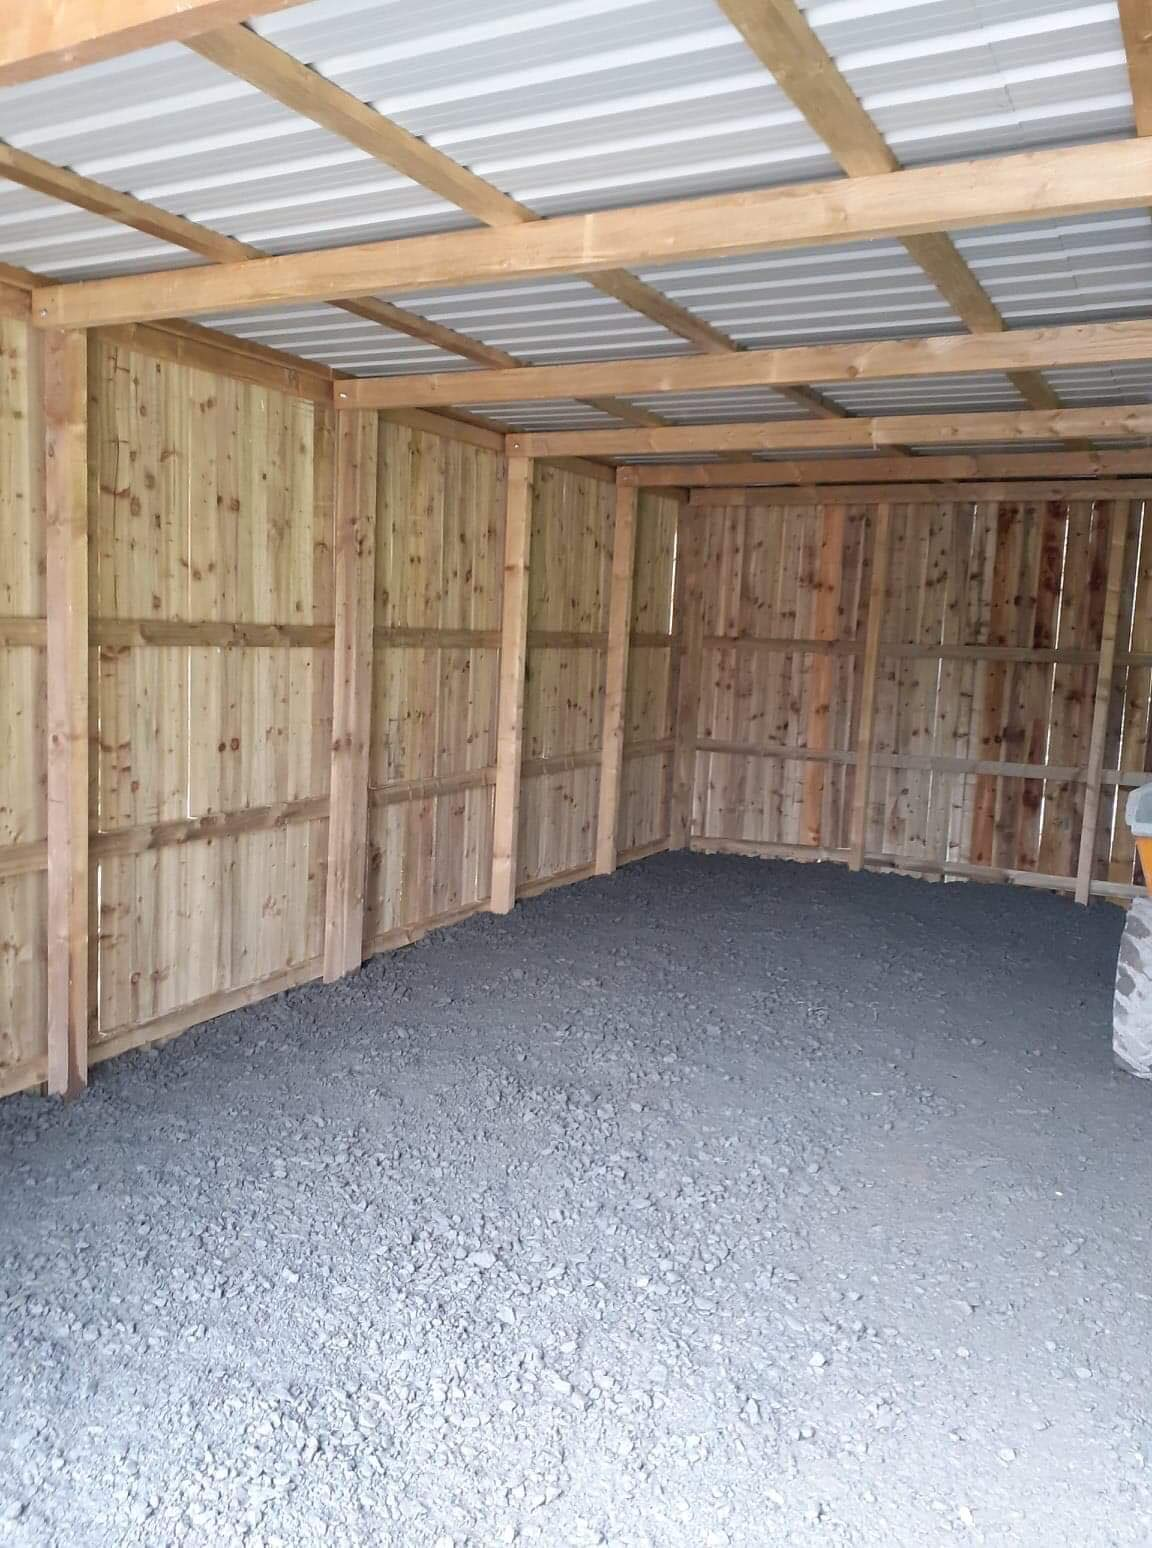 Inside the Storage shed